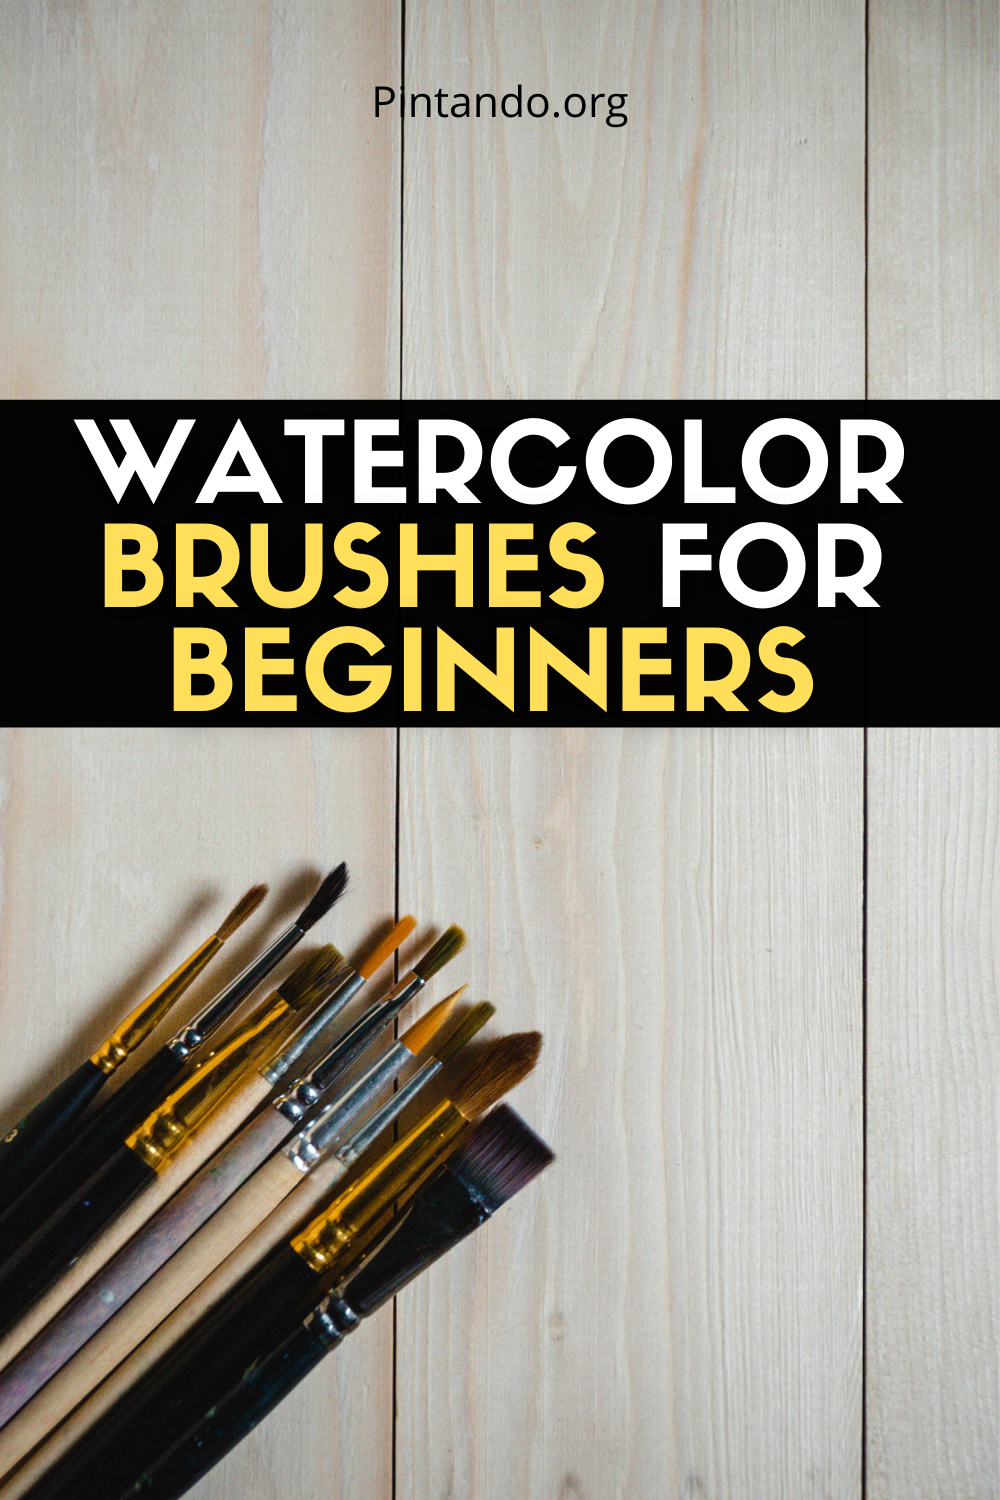 WATERCOLOR BRUSHES FOR BEGINNERS (2)